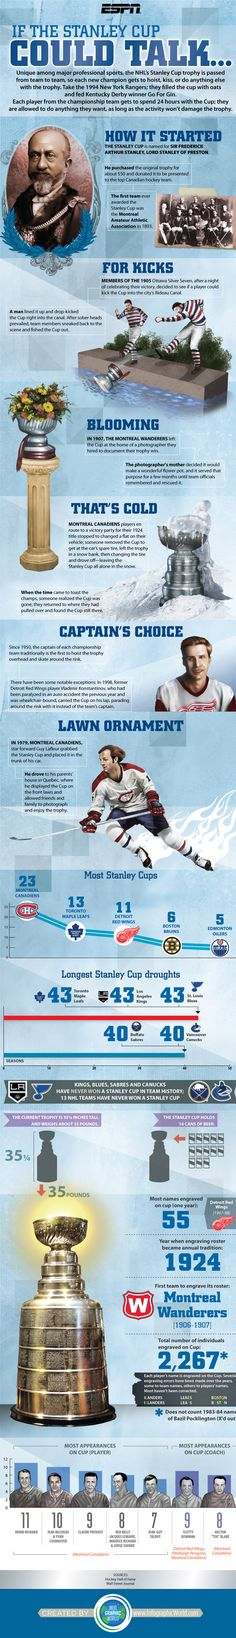 It's the Ultimate Stanley Cup Infographic! - Sports Pictures, Images, Fan Videos, Galleries - Visuals Blog - ESPN Playbook - ESPN #hockey